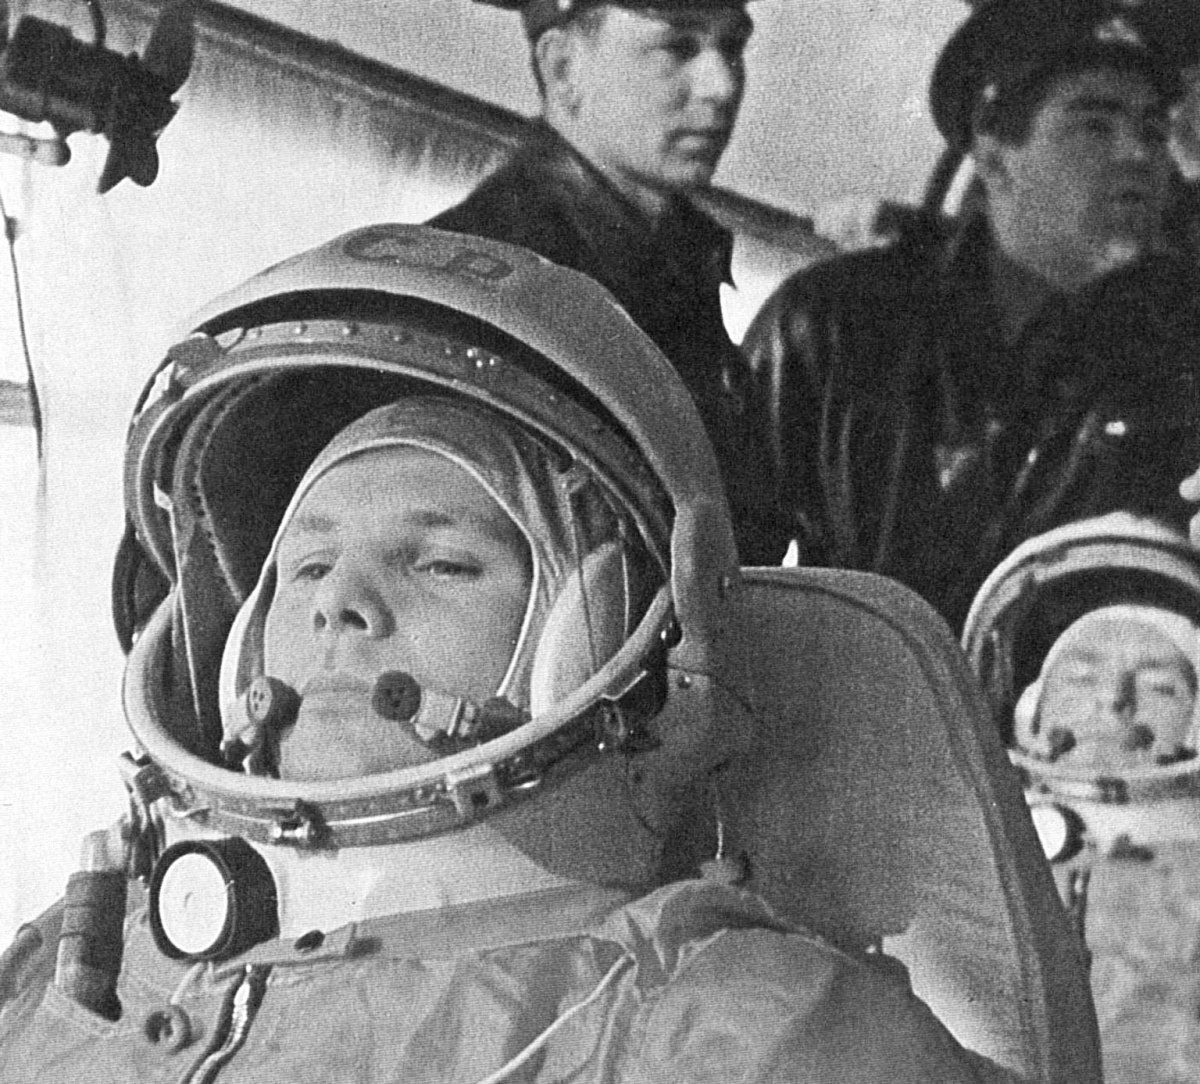 Was Yuri Gagarin's death an accident or state-sponsored murder ?